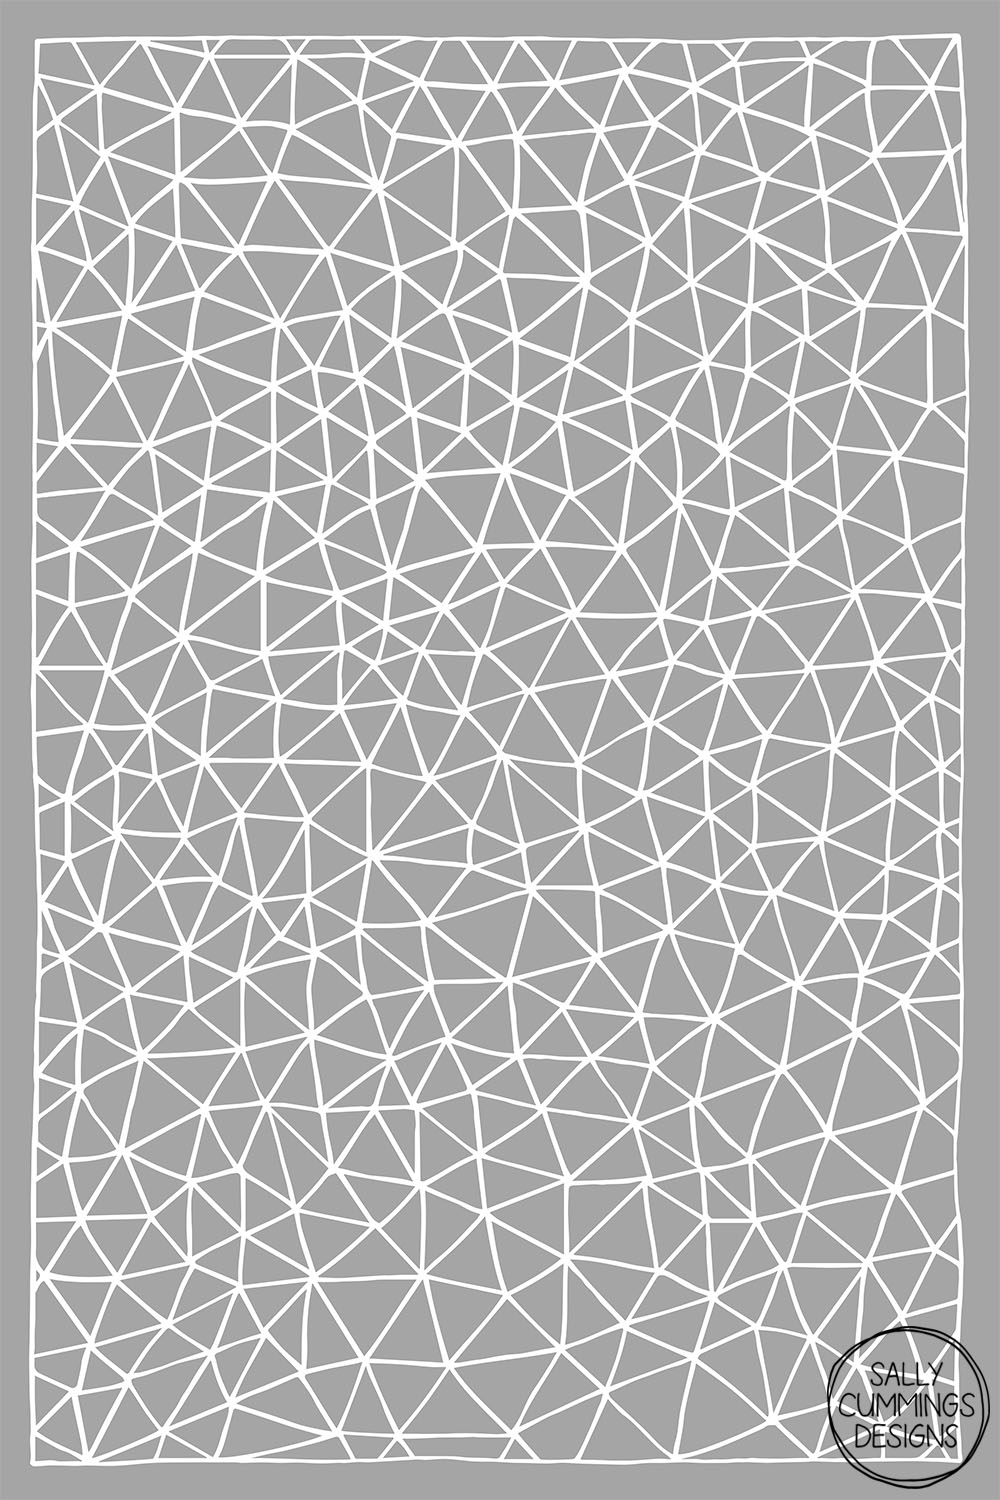 Sally Cummings Designs - Connectivity design (white on grey)